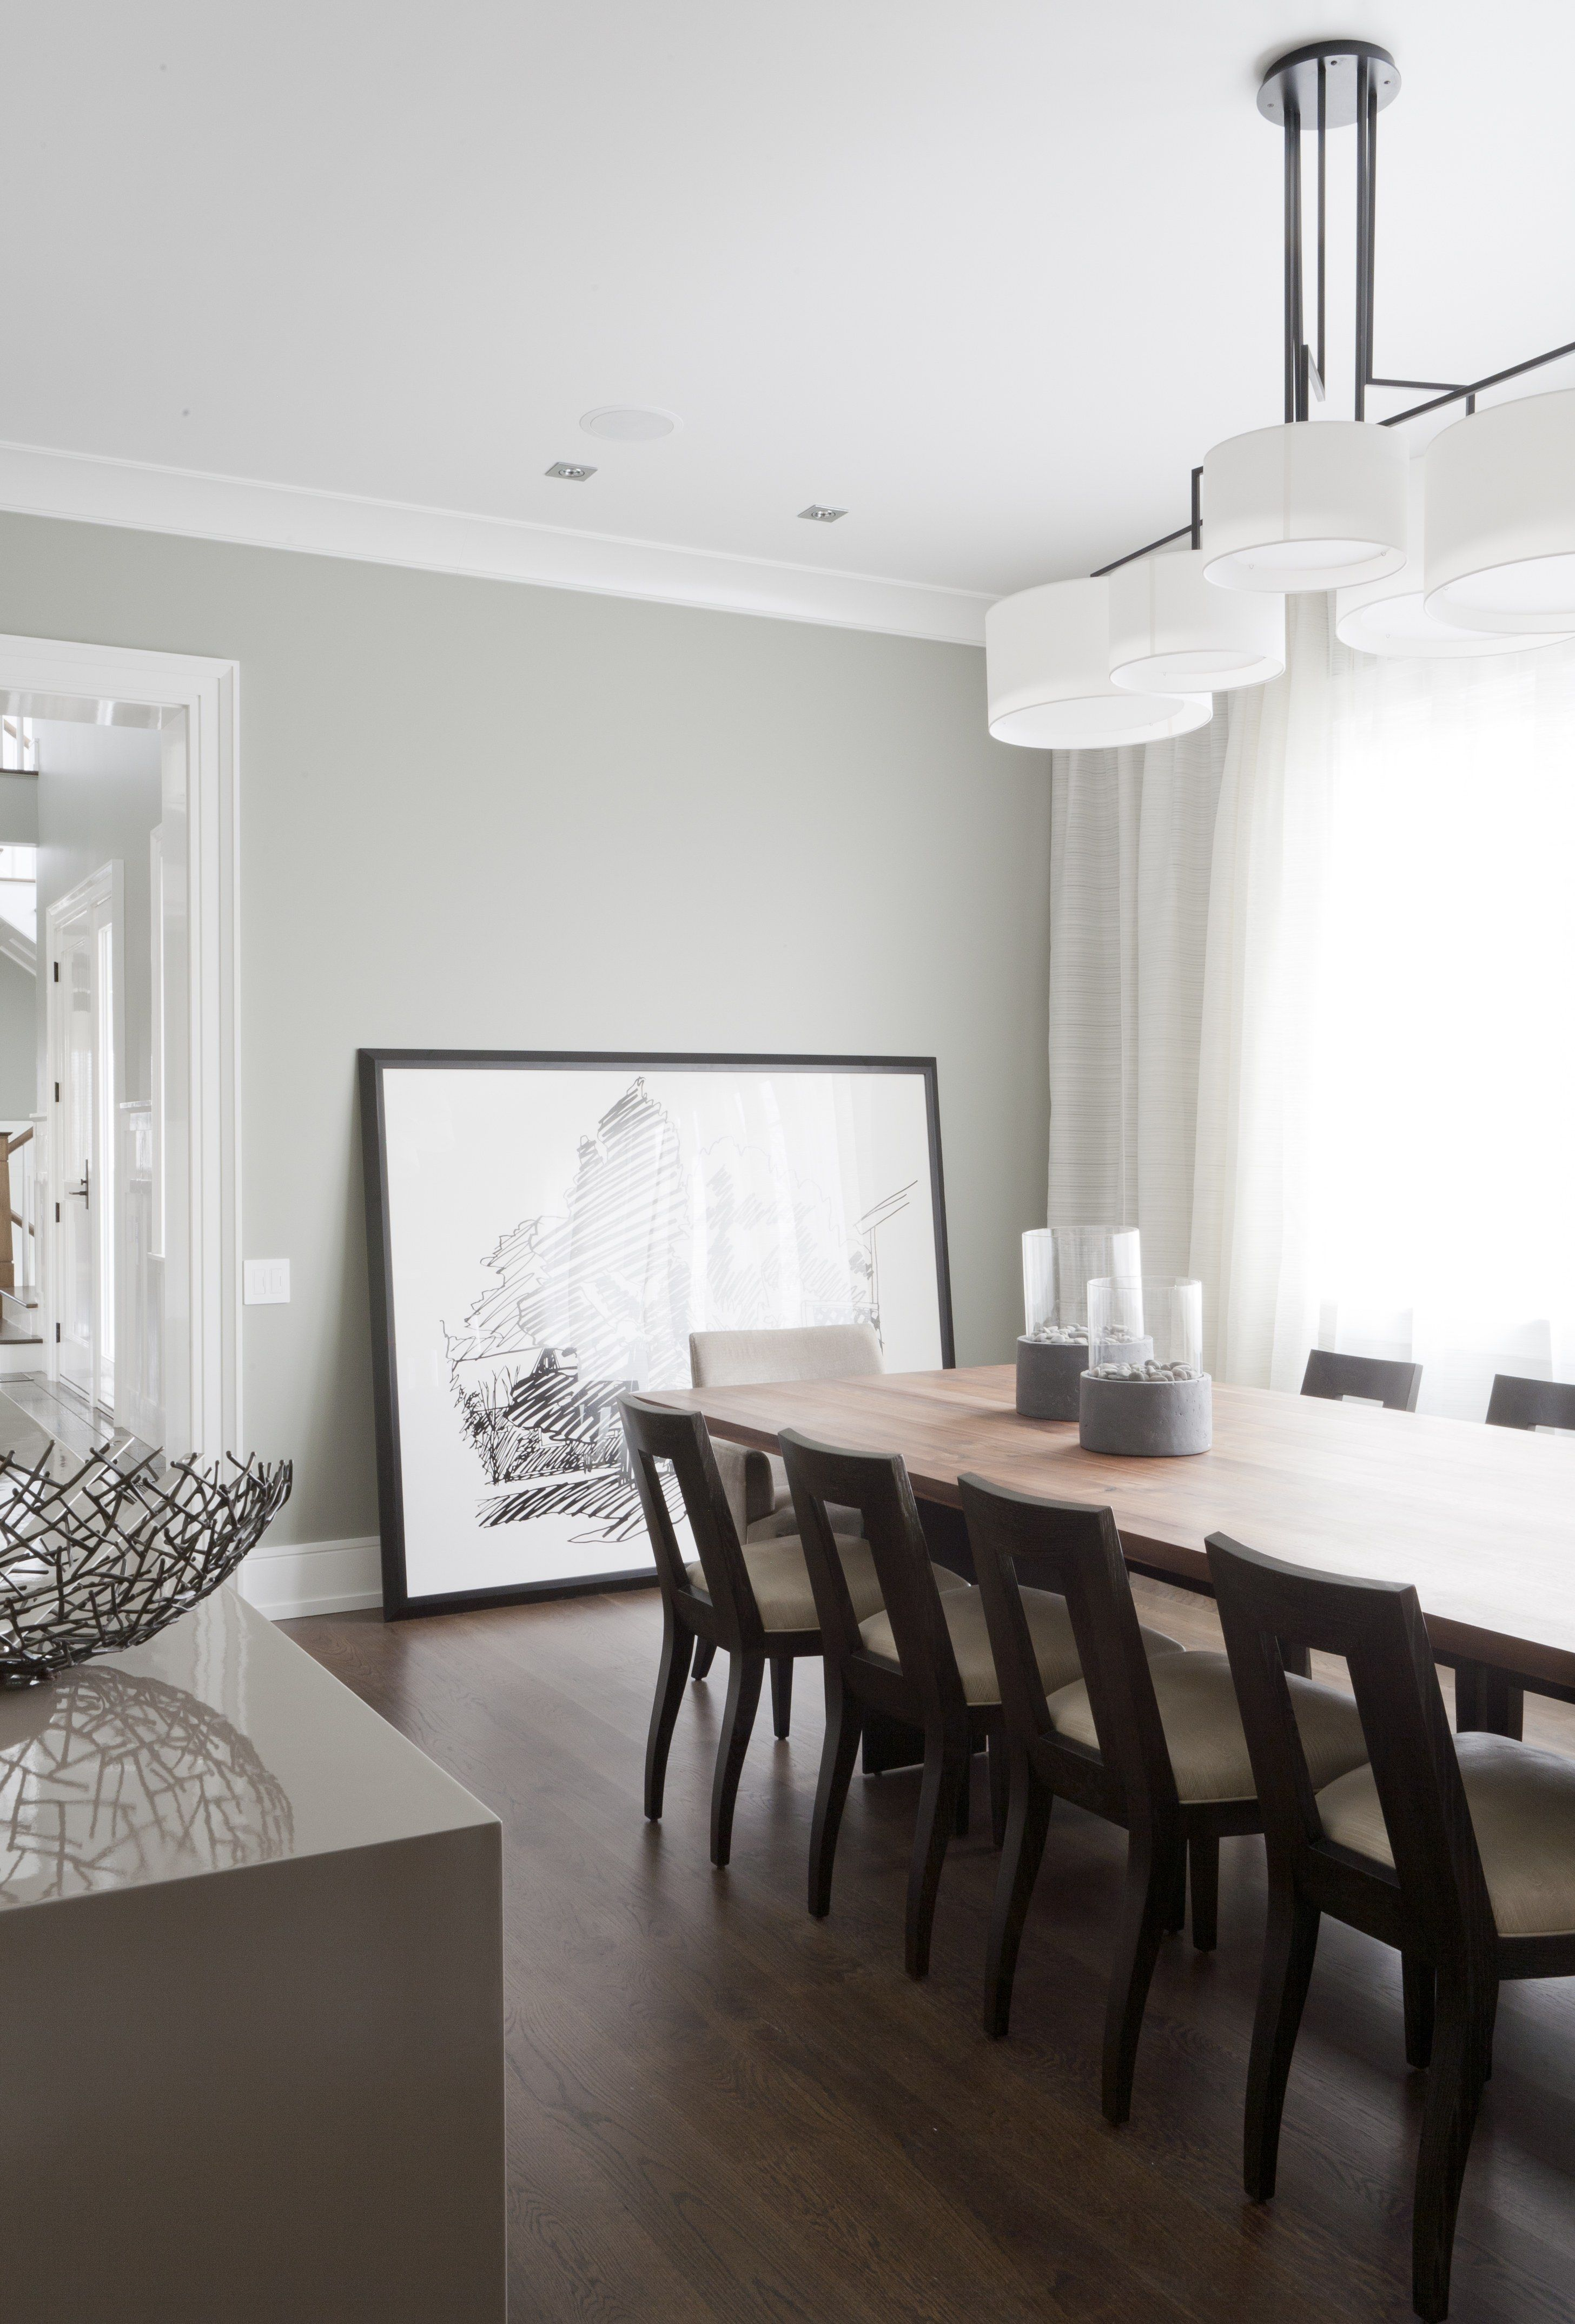 38 Awesome Perfect Greige Living Room Ideas Decortez Perfect Grey Paint Paint Colors For Home Home #perfect #greige #living #room